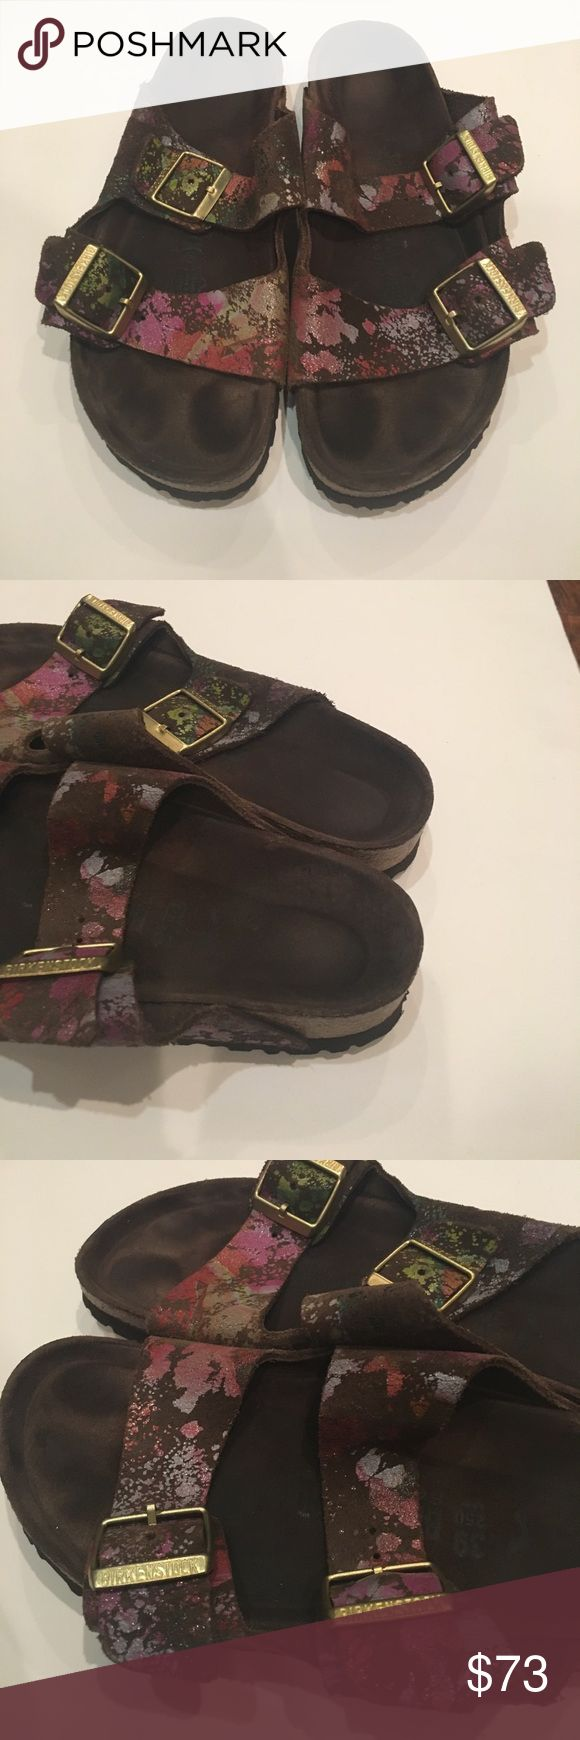 Birkenstock Sandals Sz 39 multi colored 2 strap Good condition Birkenstocks minor wear on color of straps and insole heels. See pictures. Beautiful shoes. Birkenstock Shoes Sandals